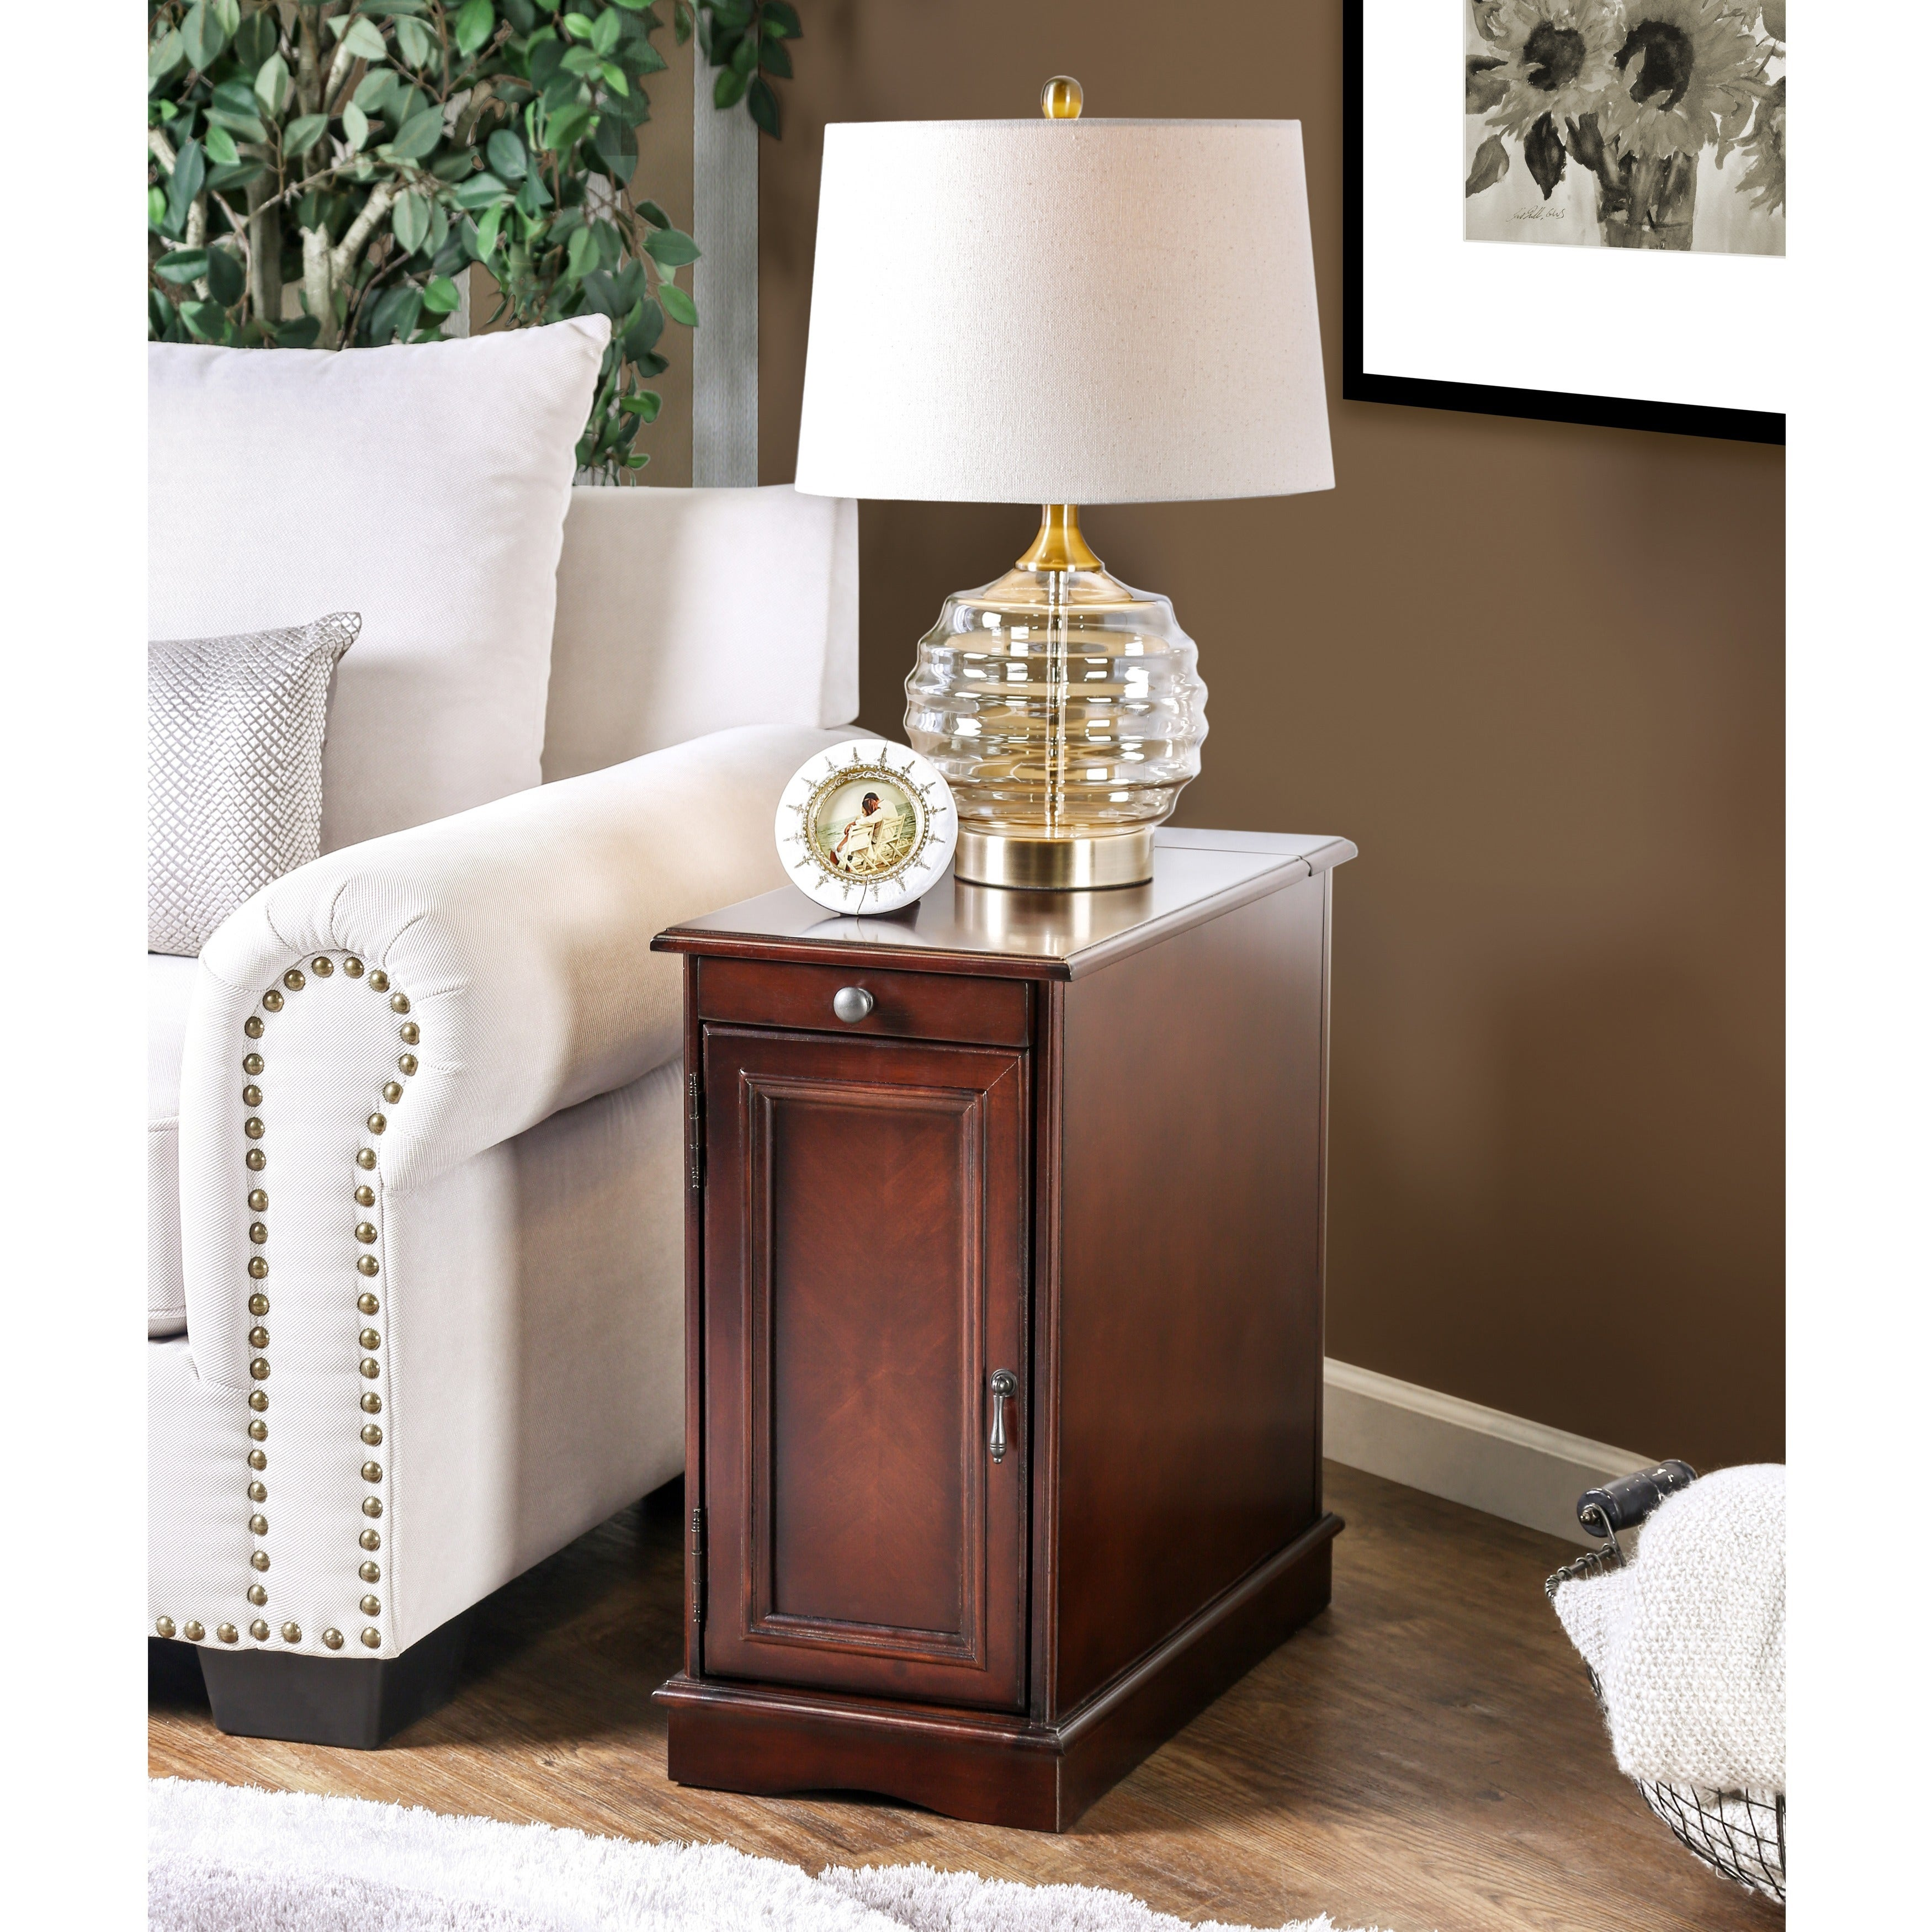 Gracewood Hollow Flanagan Multi Storage Side Table With Power Strip